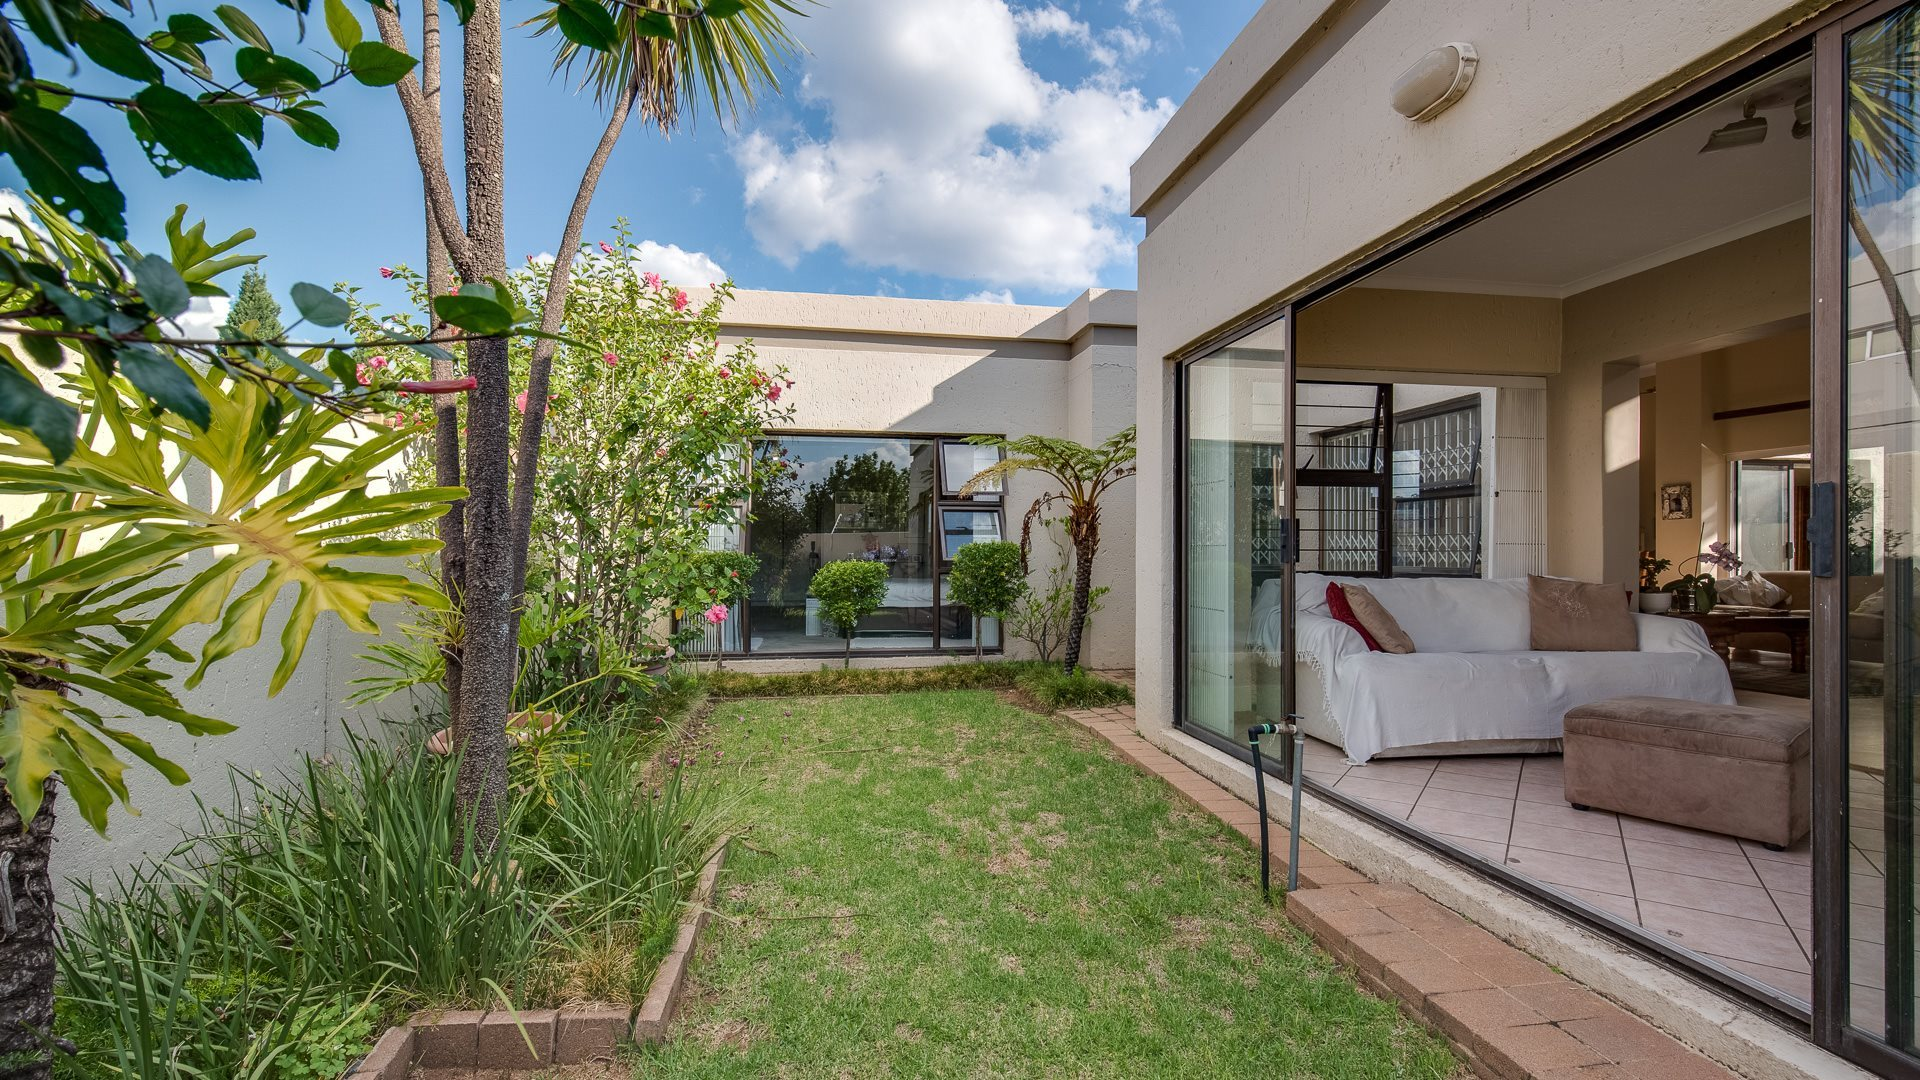 Johannesburg, Waverley Property  | Houses For Sale Waverley, Waverley, House 2 bedrooms property for sale Price:2,550,000